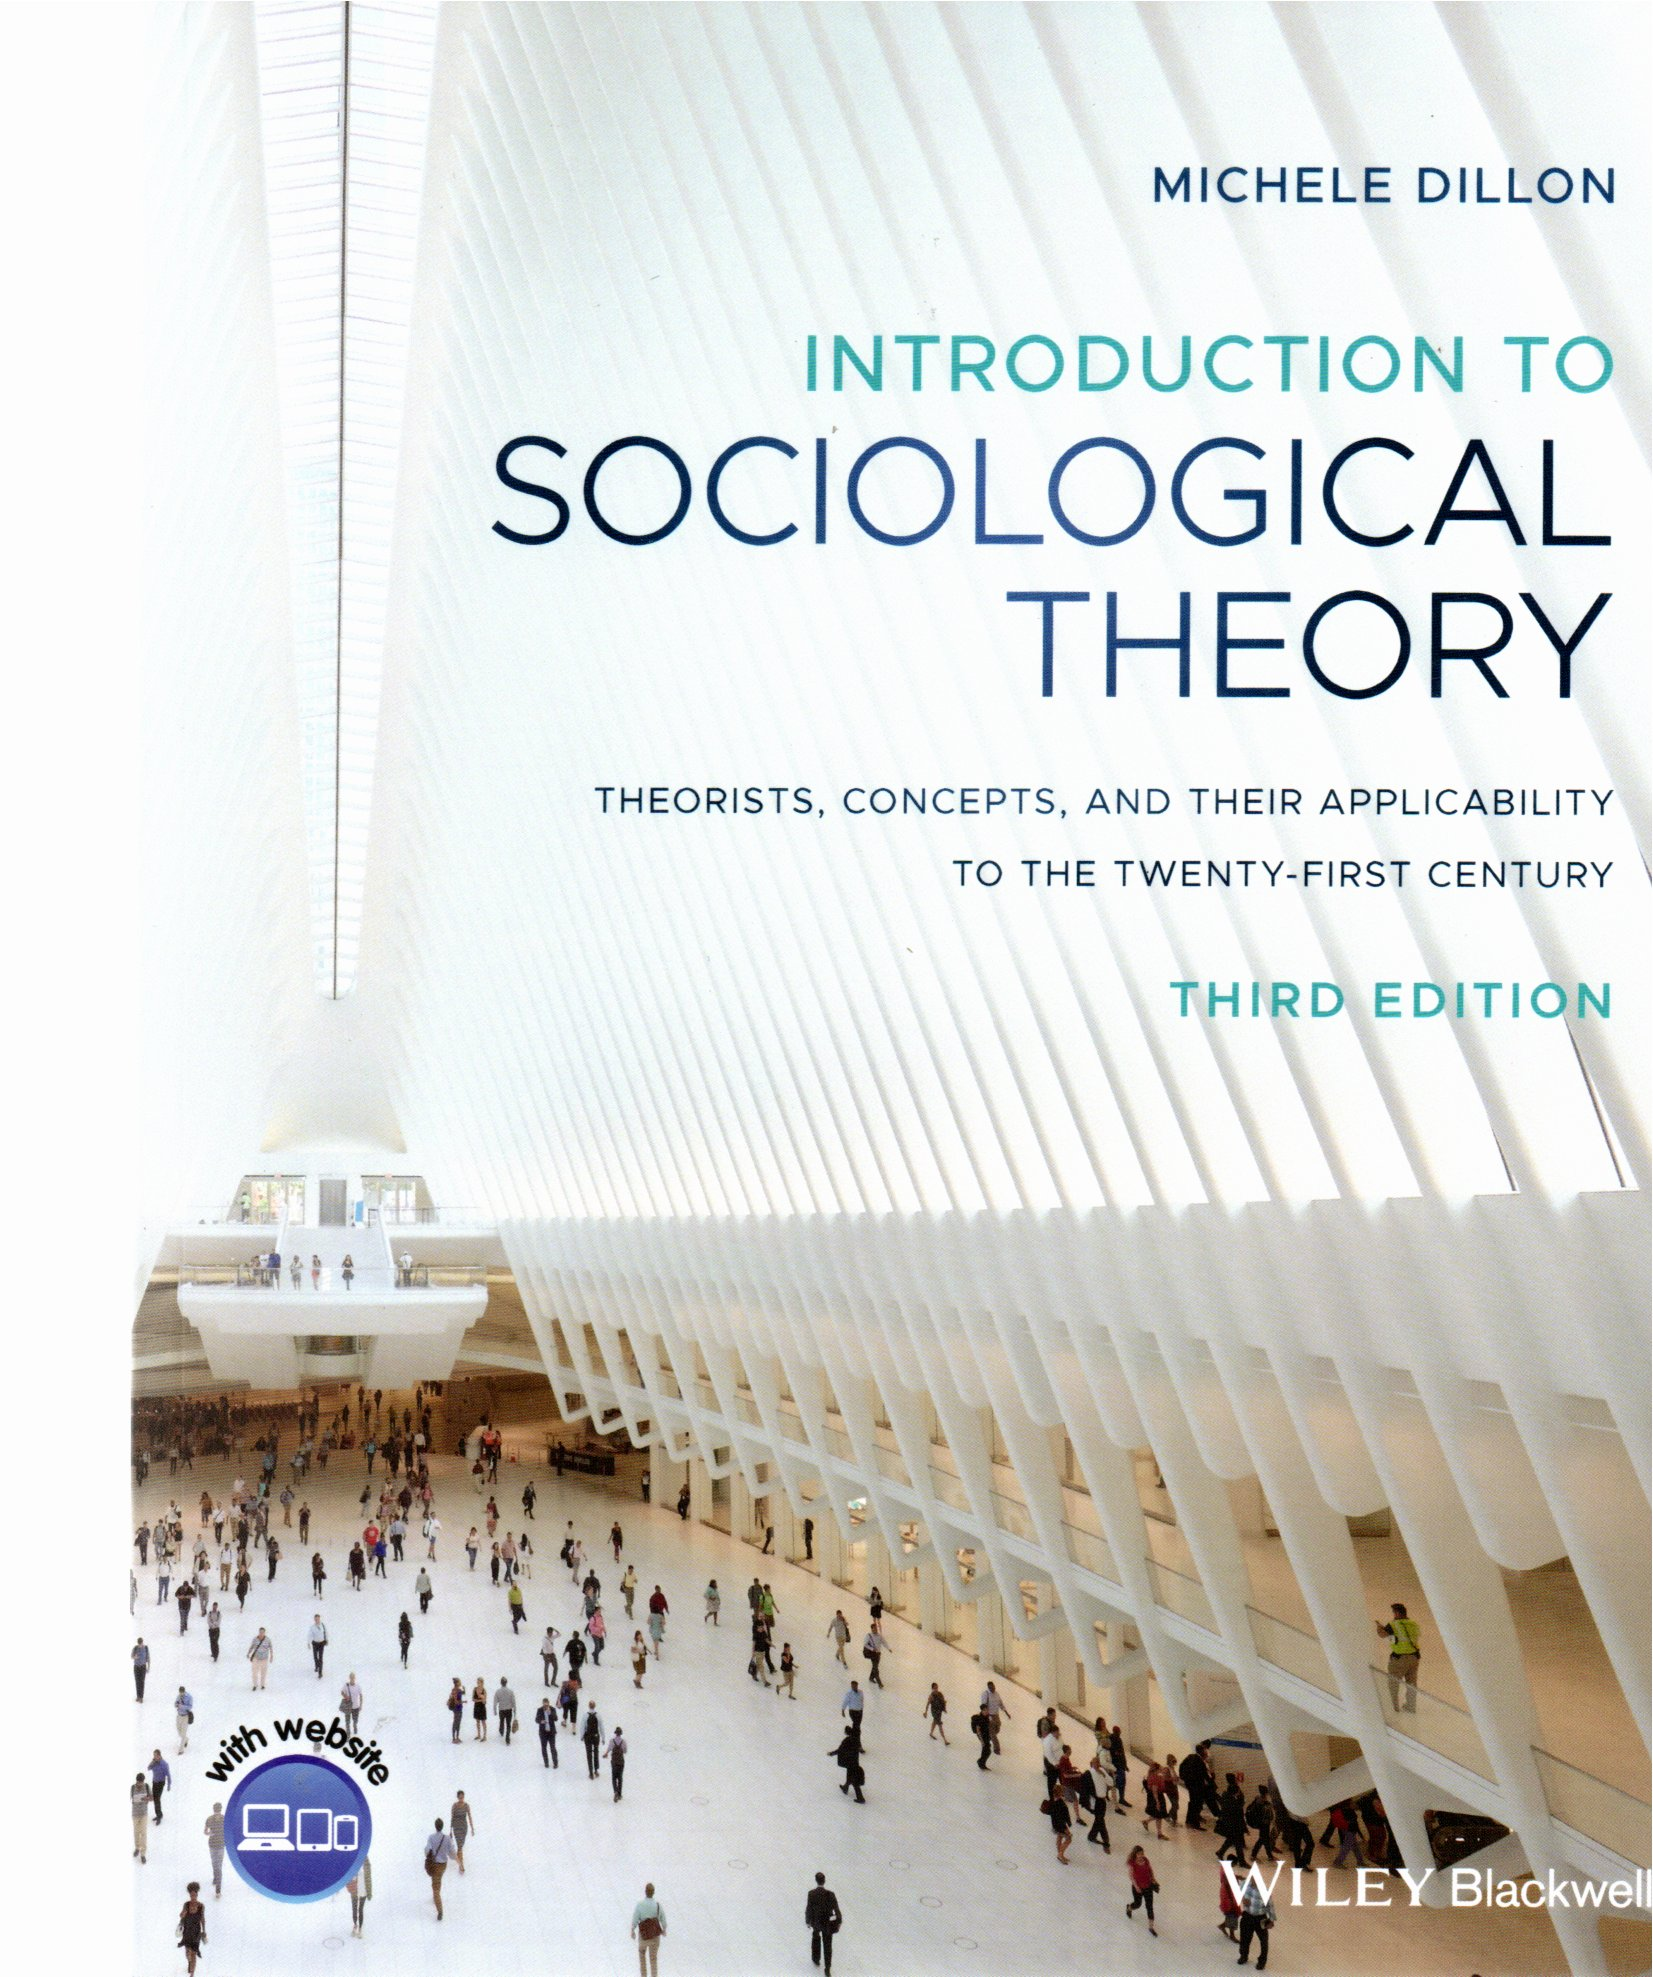 Introduction to sociological theory  3rd ed / Michele Dillon